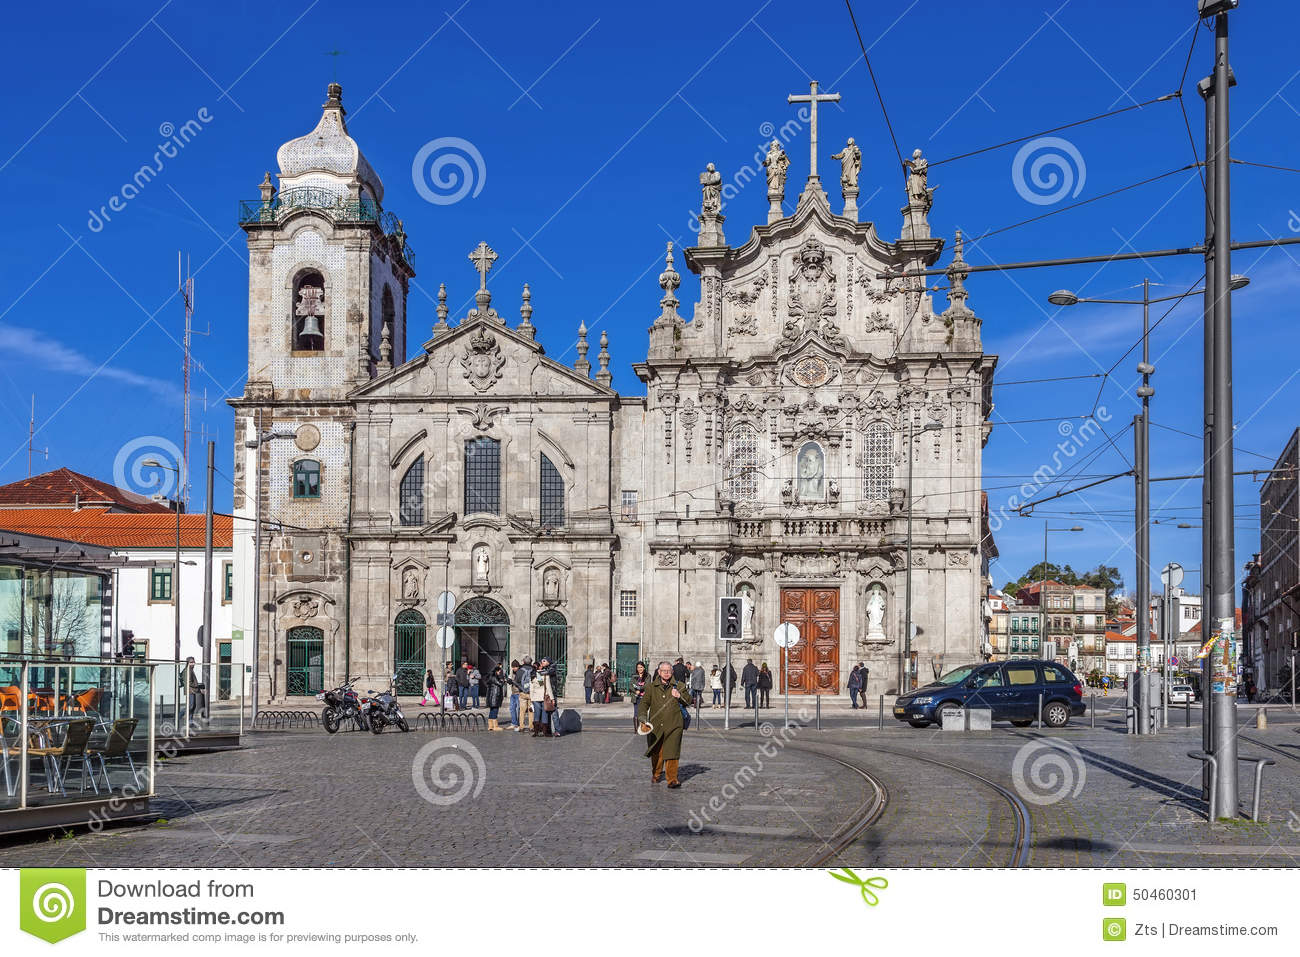 Carmelitas Church on the left, Mannerist and Baroque styles, and Carmo Church at the right in Rococo style